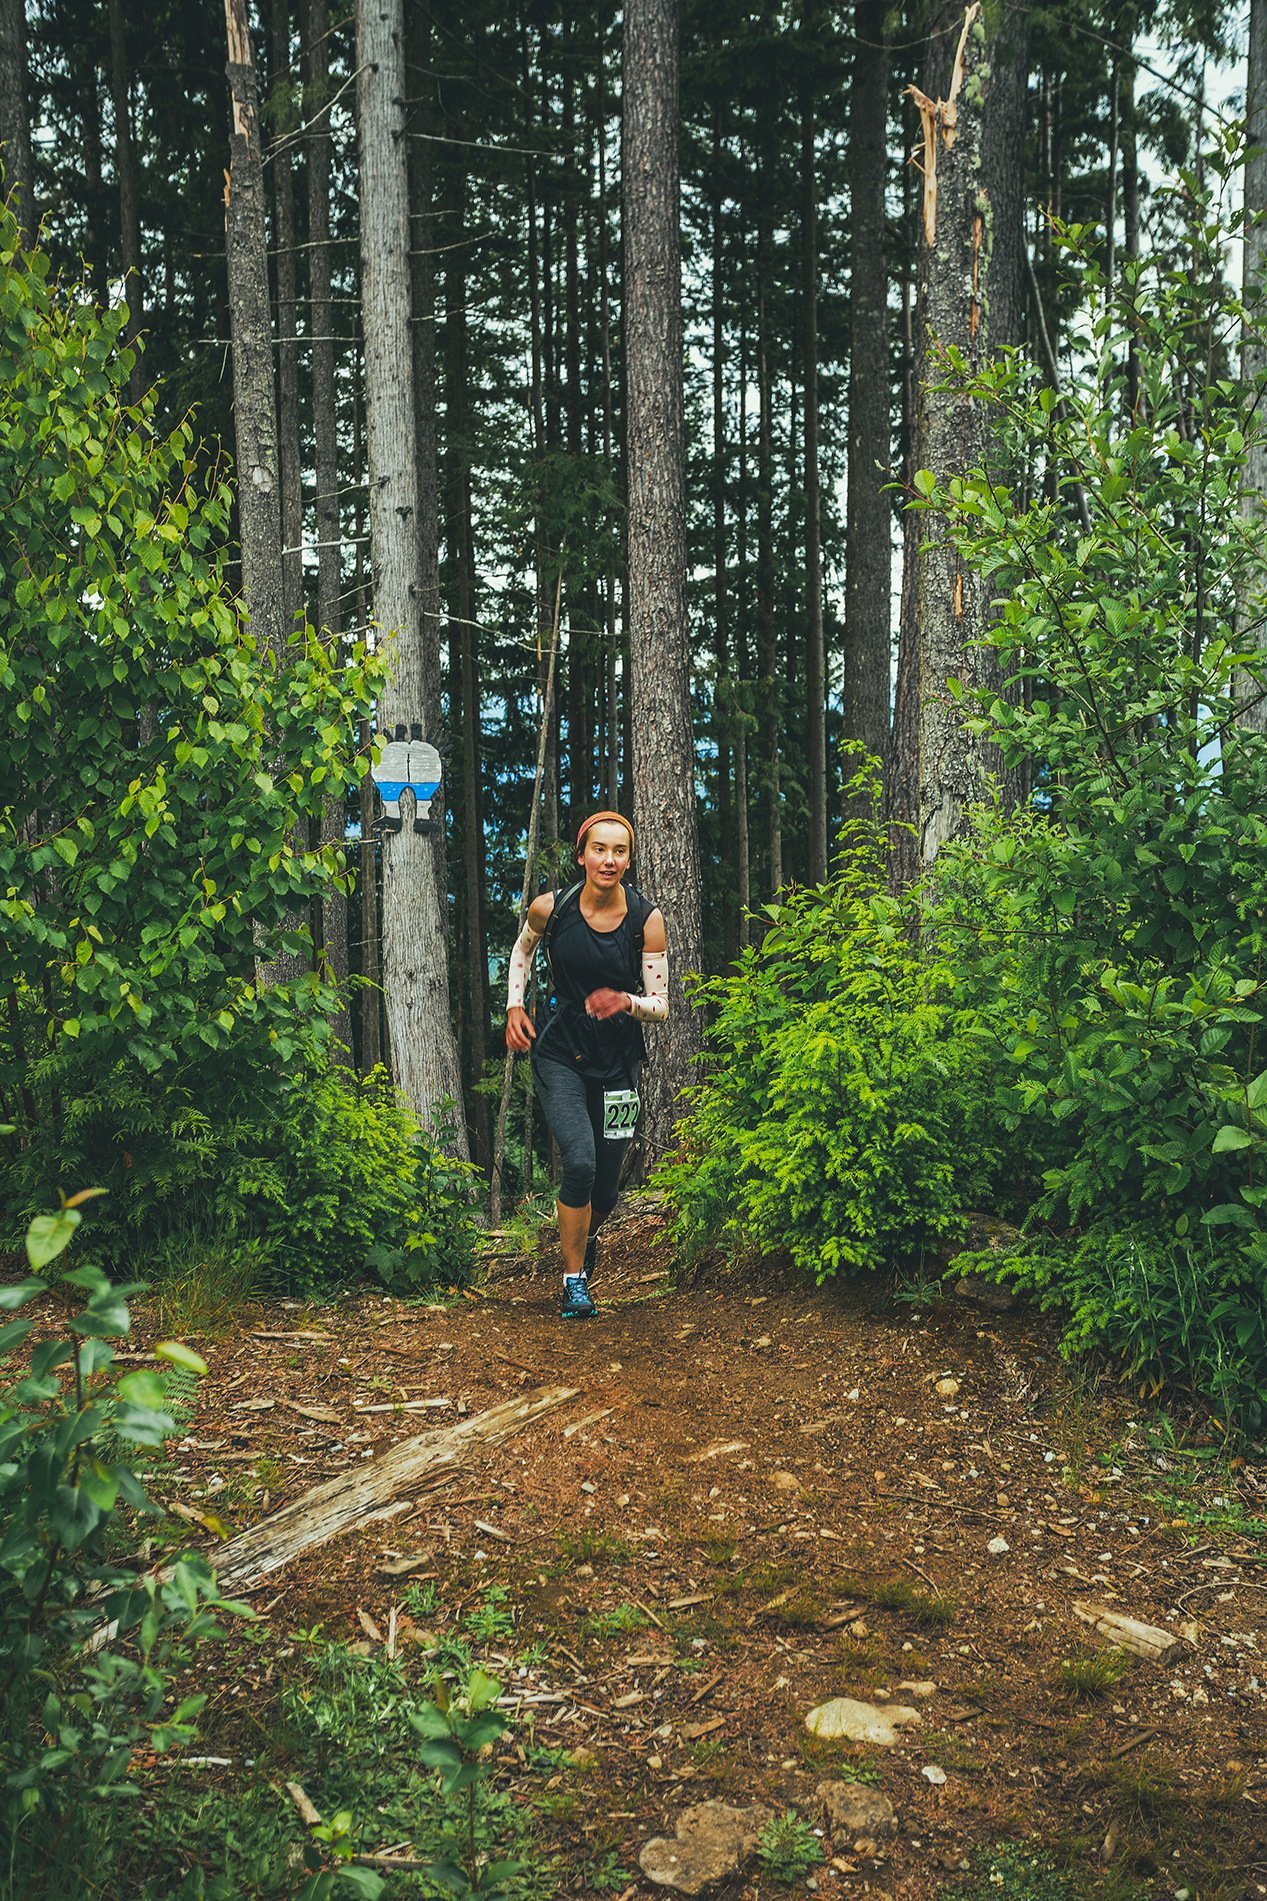 Fraser Valley Trail Races - Bear Mountain - IMG_2708 by Brice Ferre Studio - Vancouver Portrait Adventure and Athlete Photographer.jpg